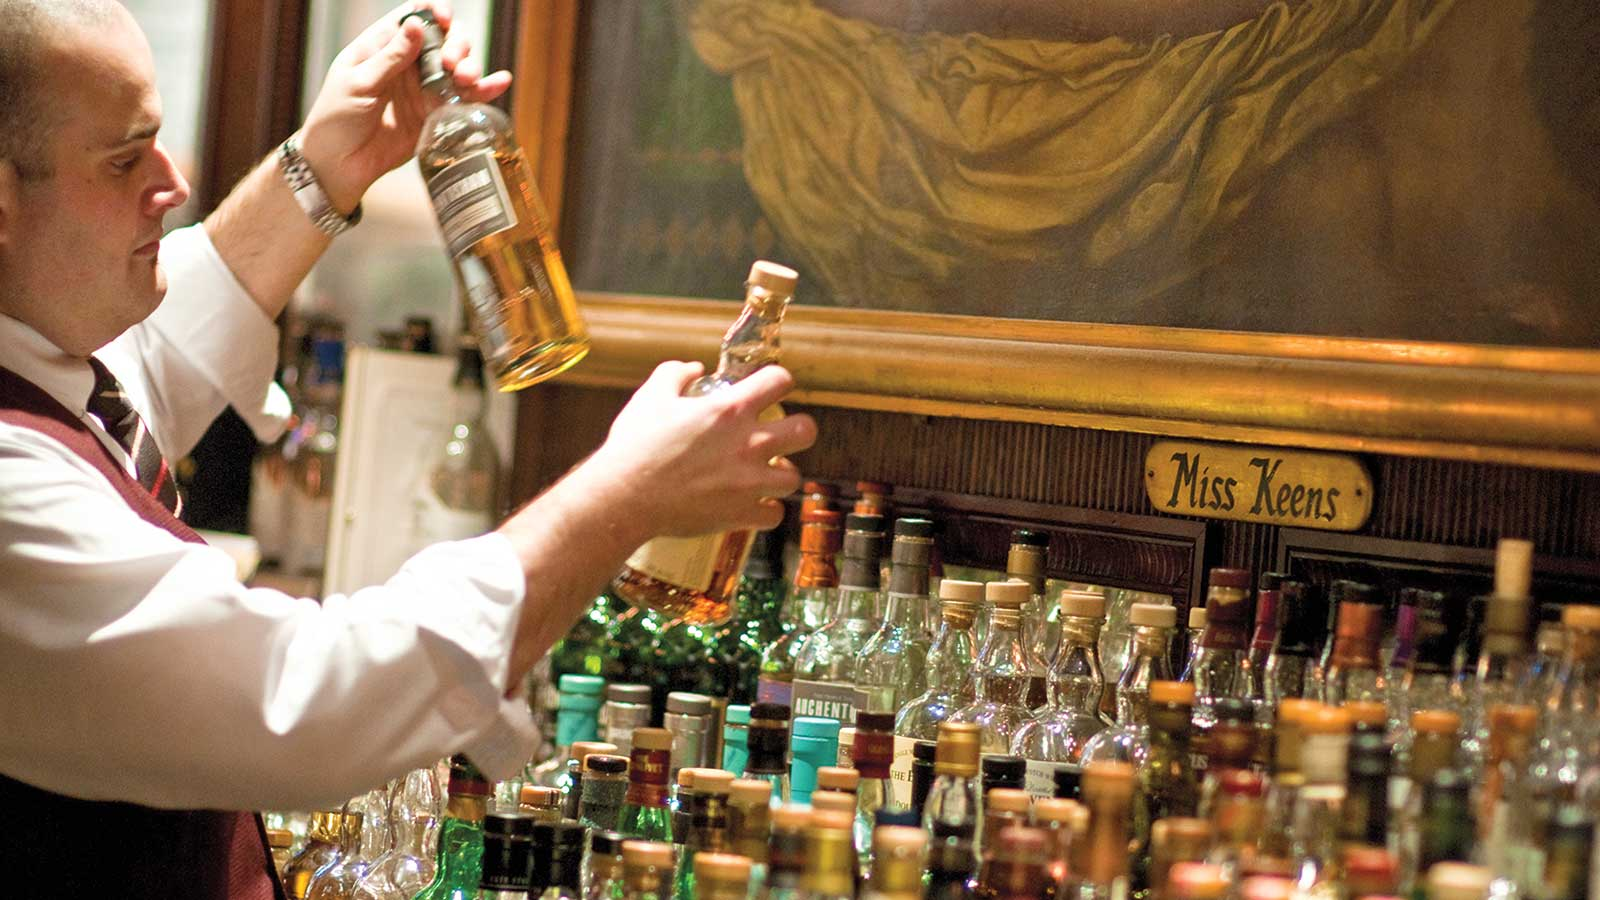 Keens has a long list of whiskies, with around 240 single-malt Scotches alone.